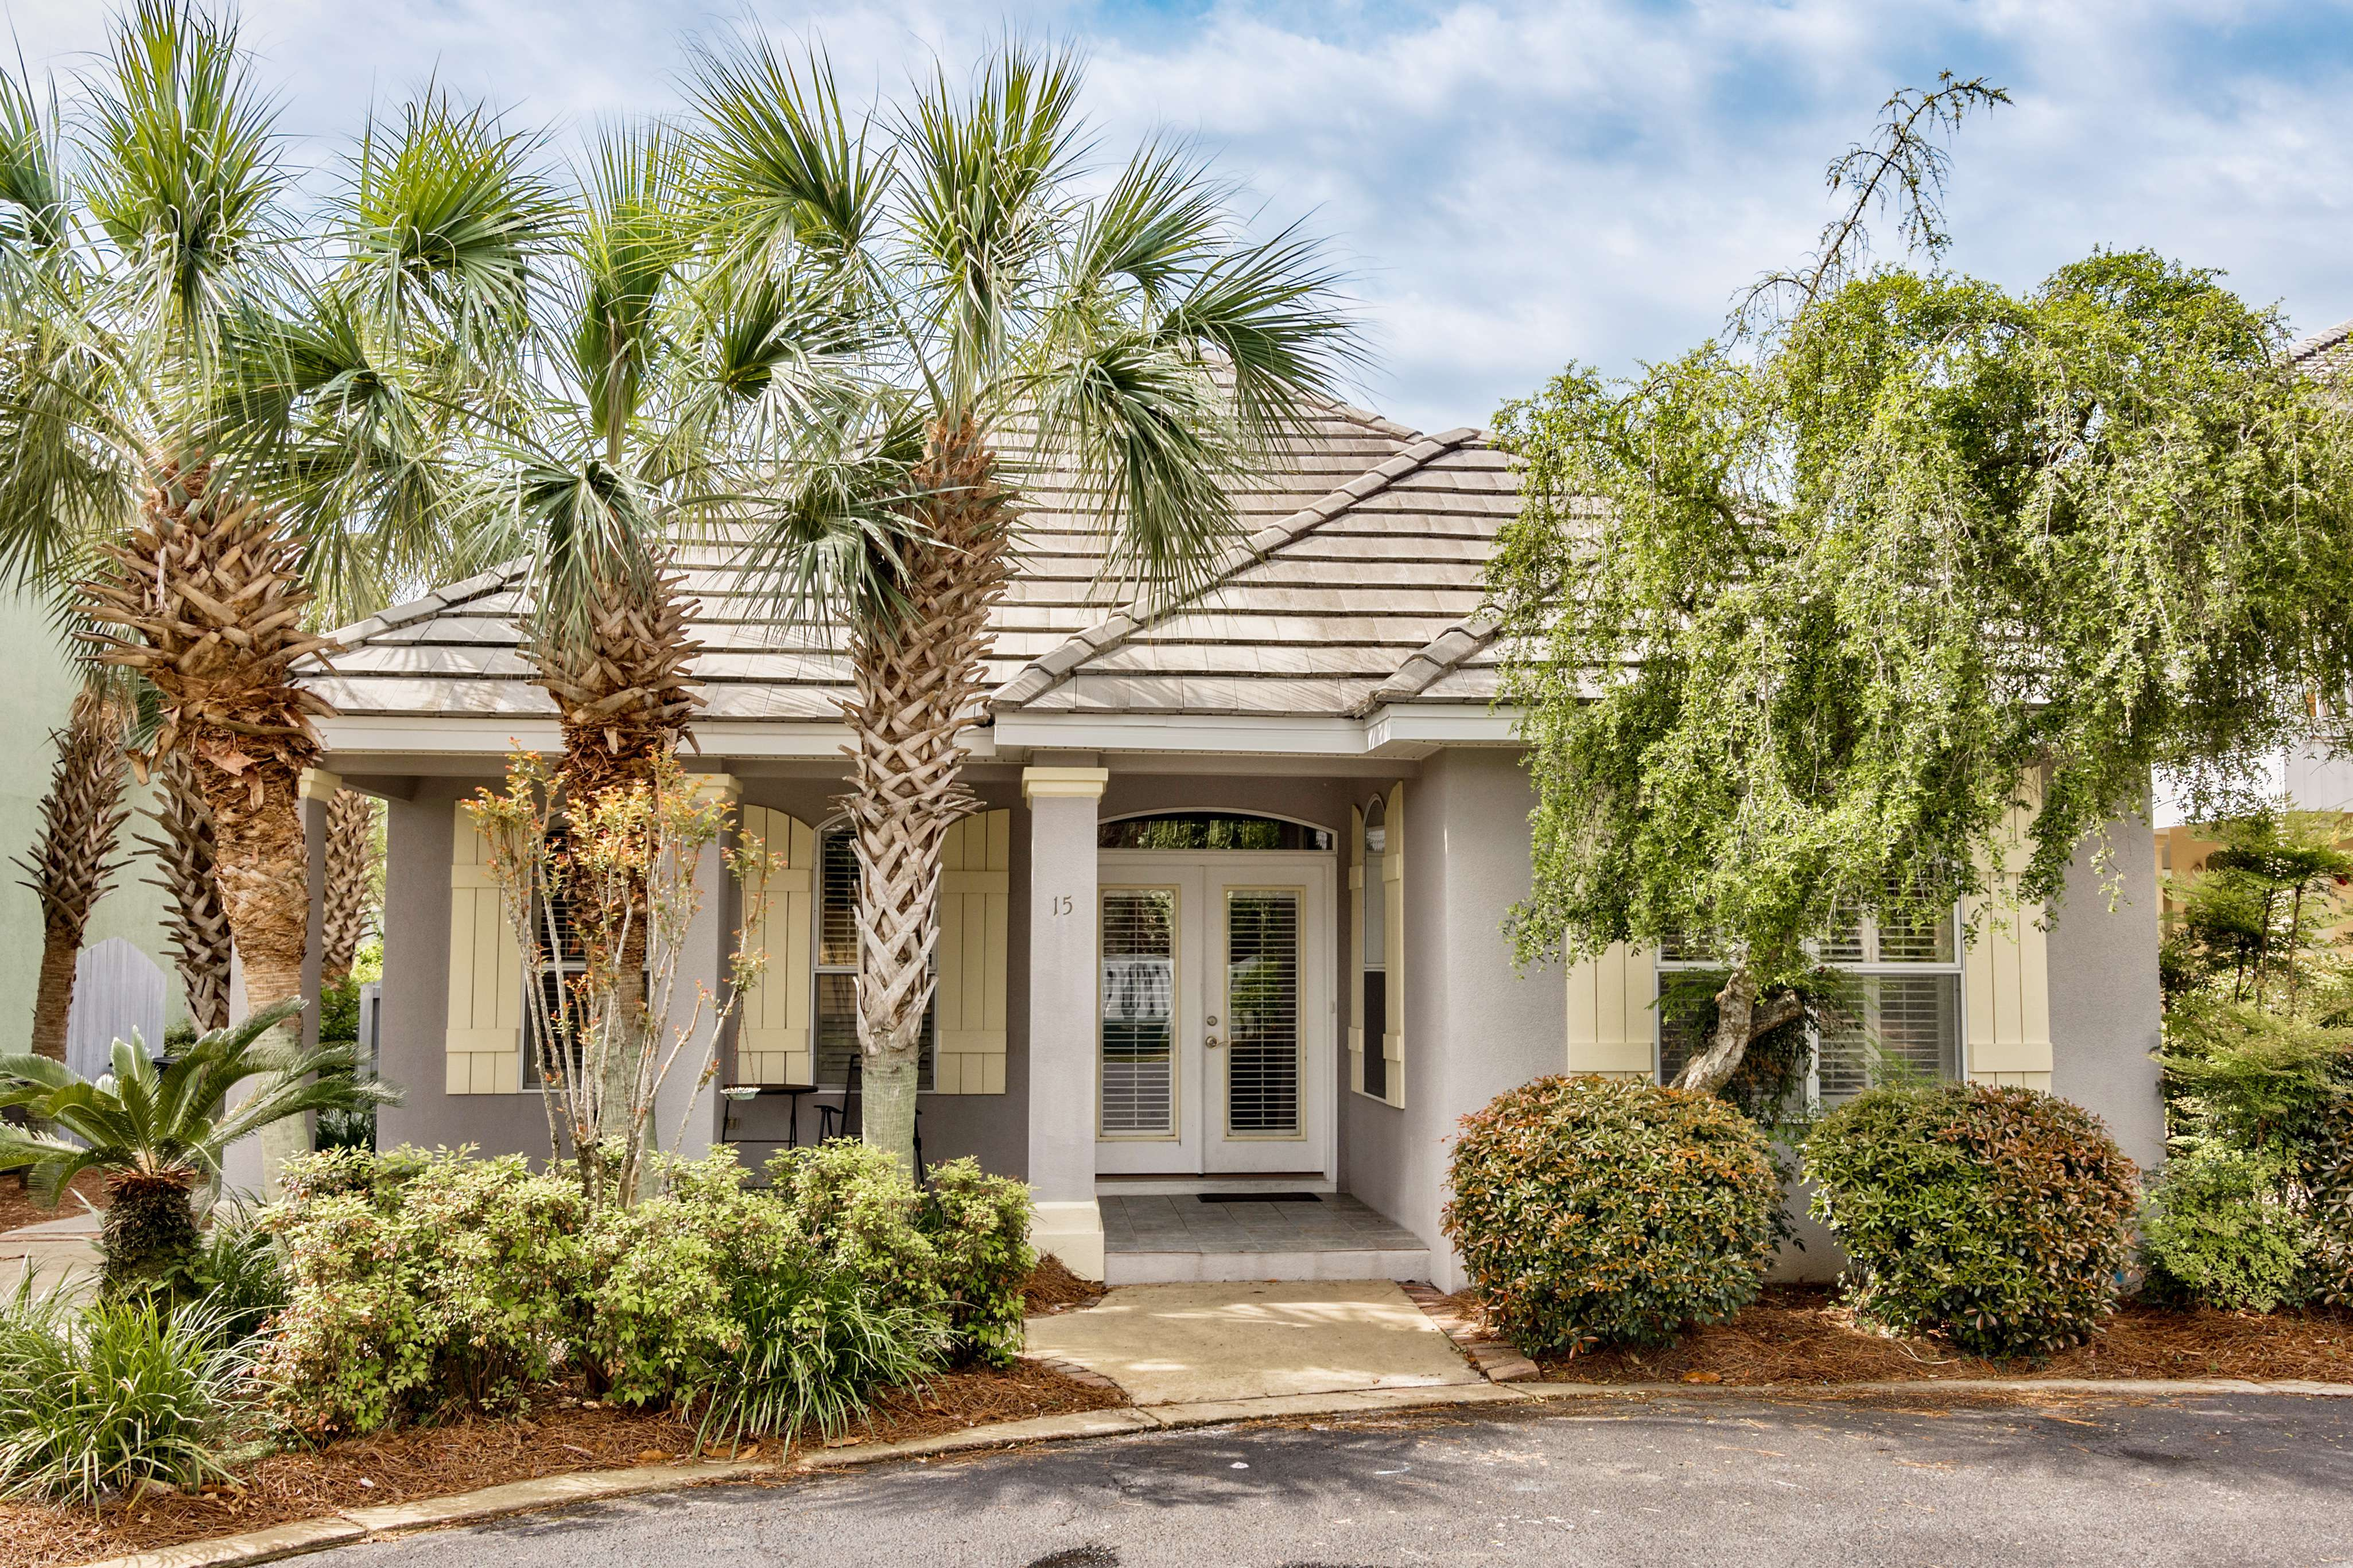 15 Garnett Cove Emerald Shores Destin Florida